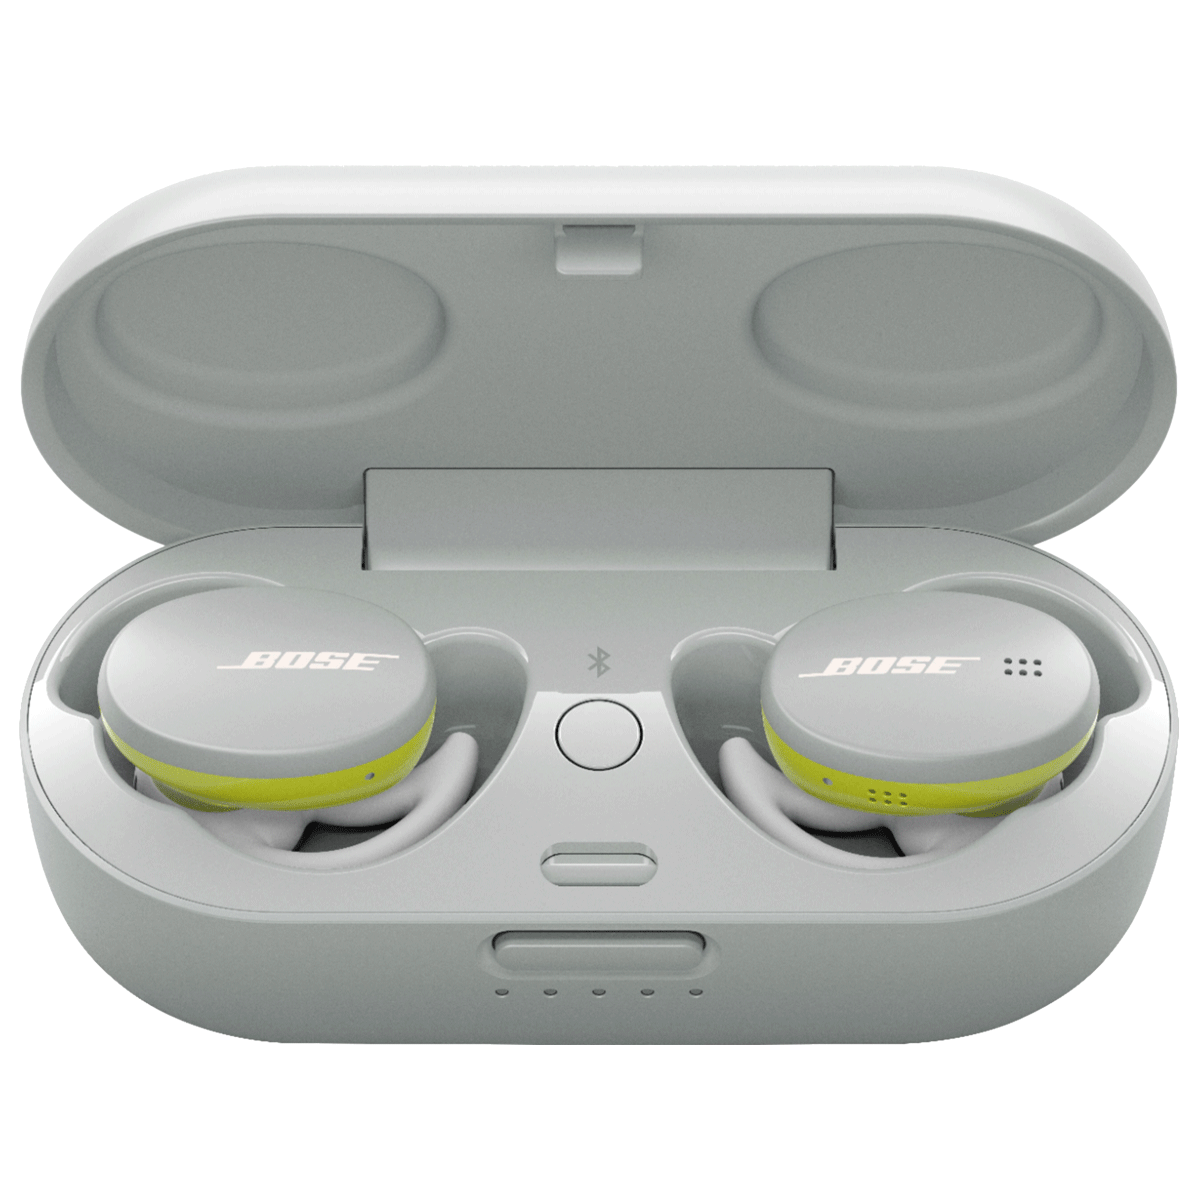 Bose Sport In-Ear Truly Wireless Earbuds with Mic (Bluetooth 5.0, Weather and Sweat Resistant, 805746-0030, Glacier White)_1